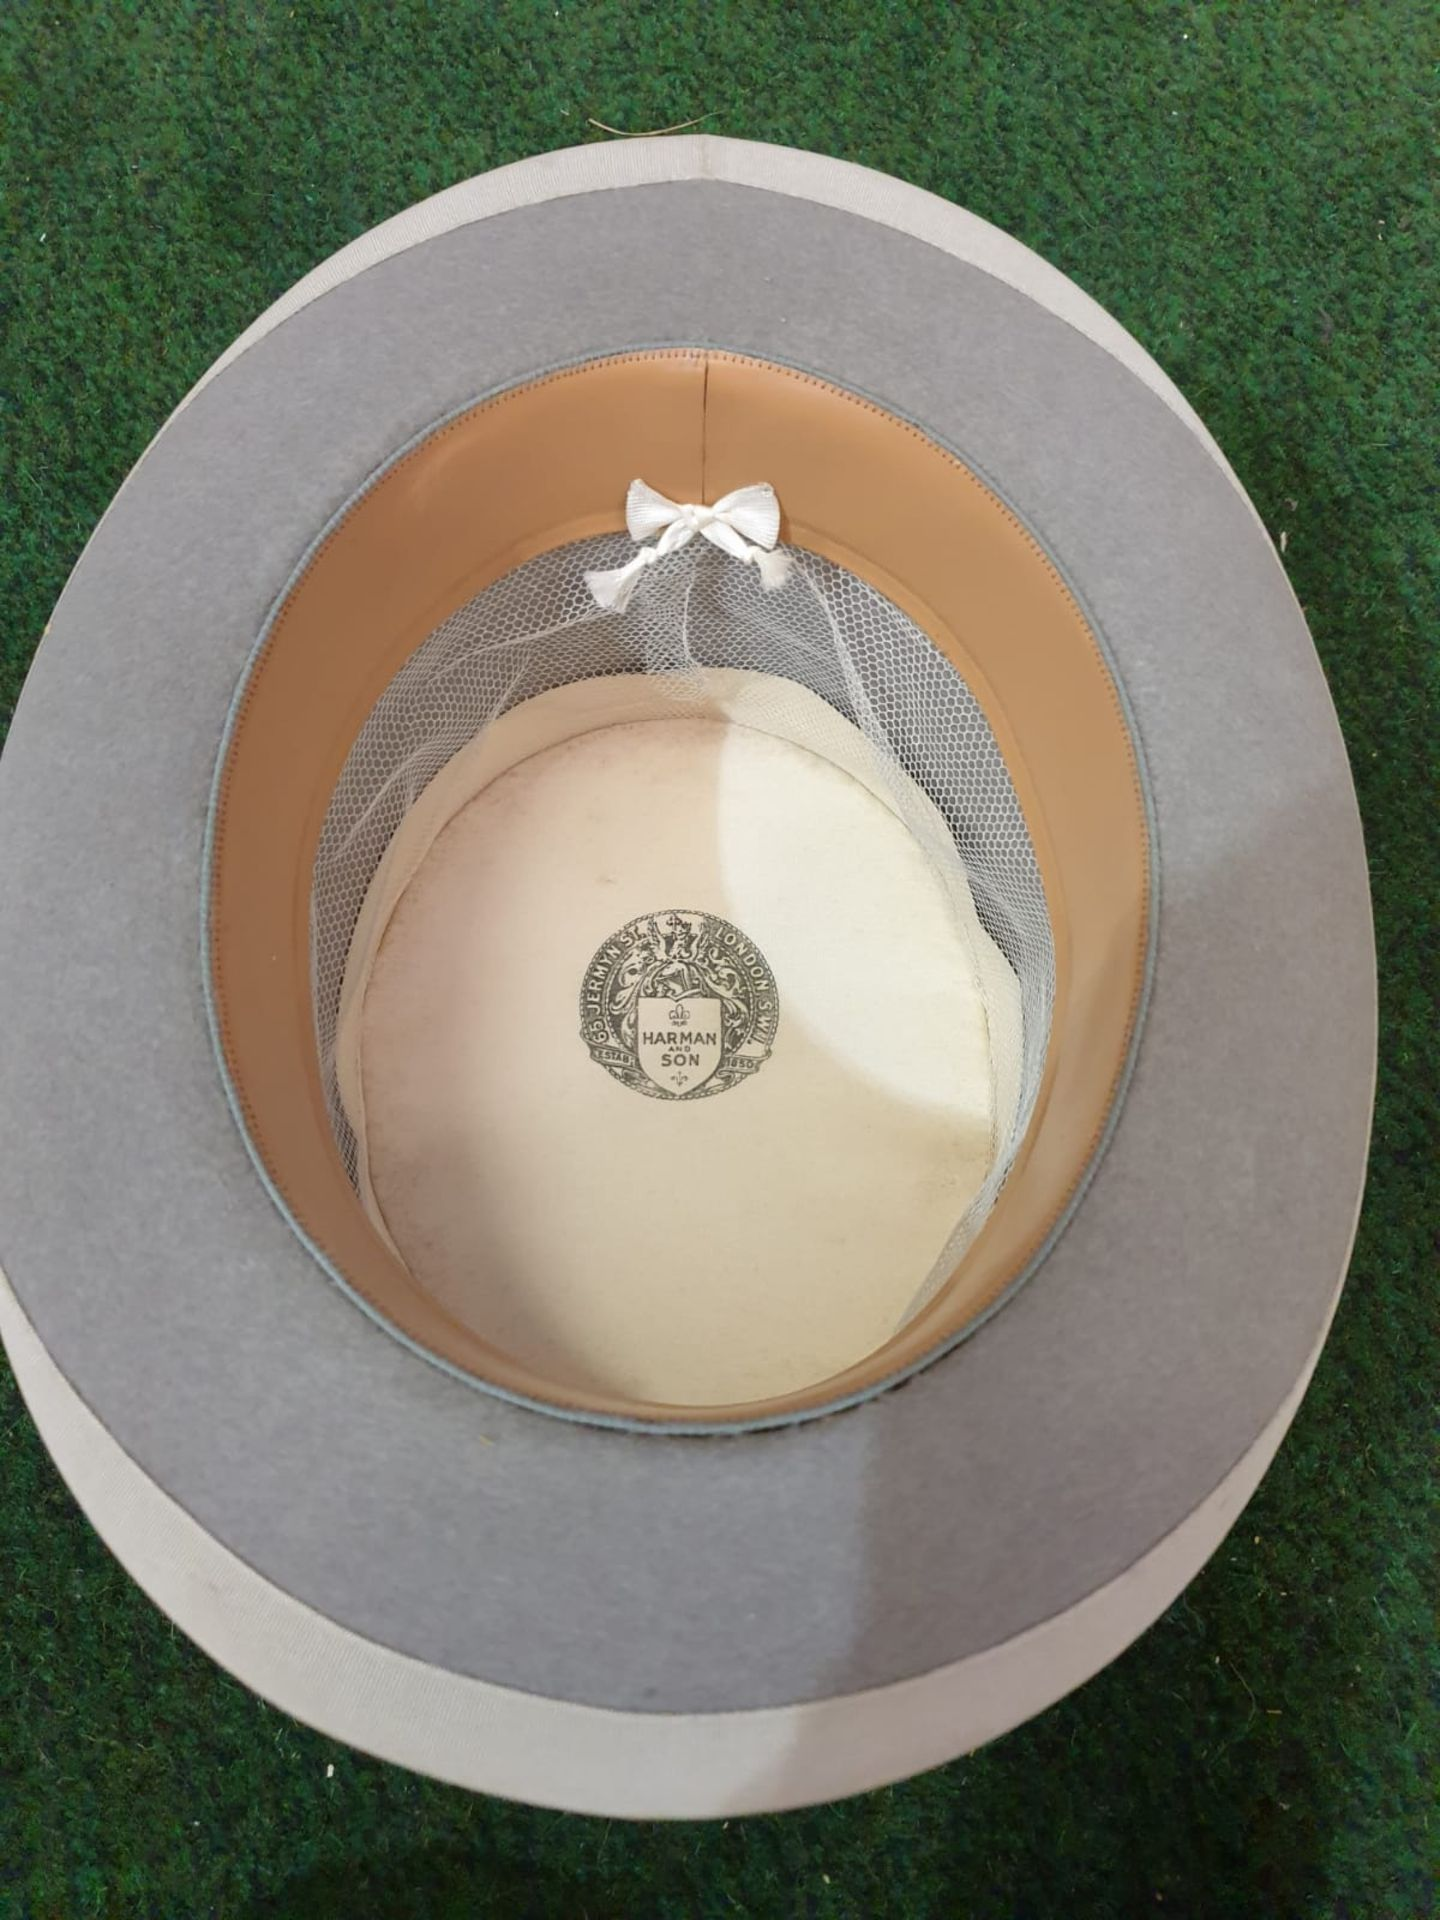 A Hillhouse and Co. of 11 New Bond Street, London, grey top hat in original hat box - Image 3 of 4